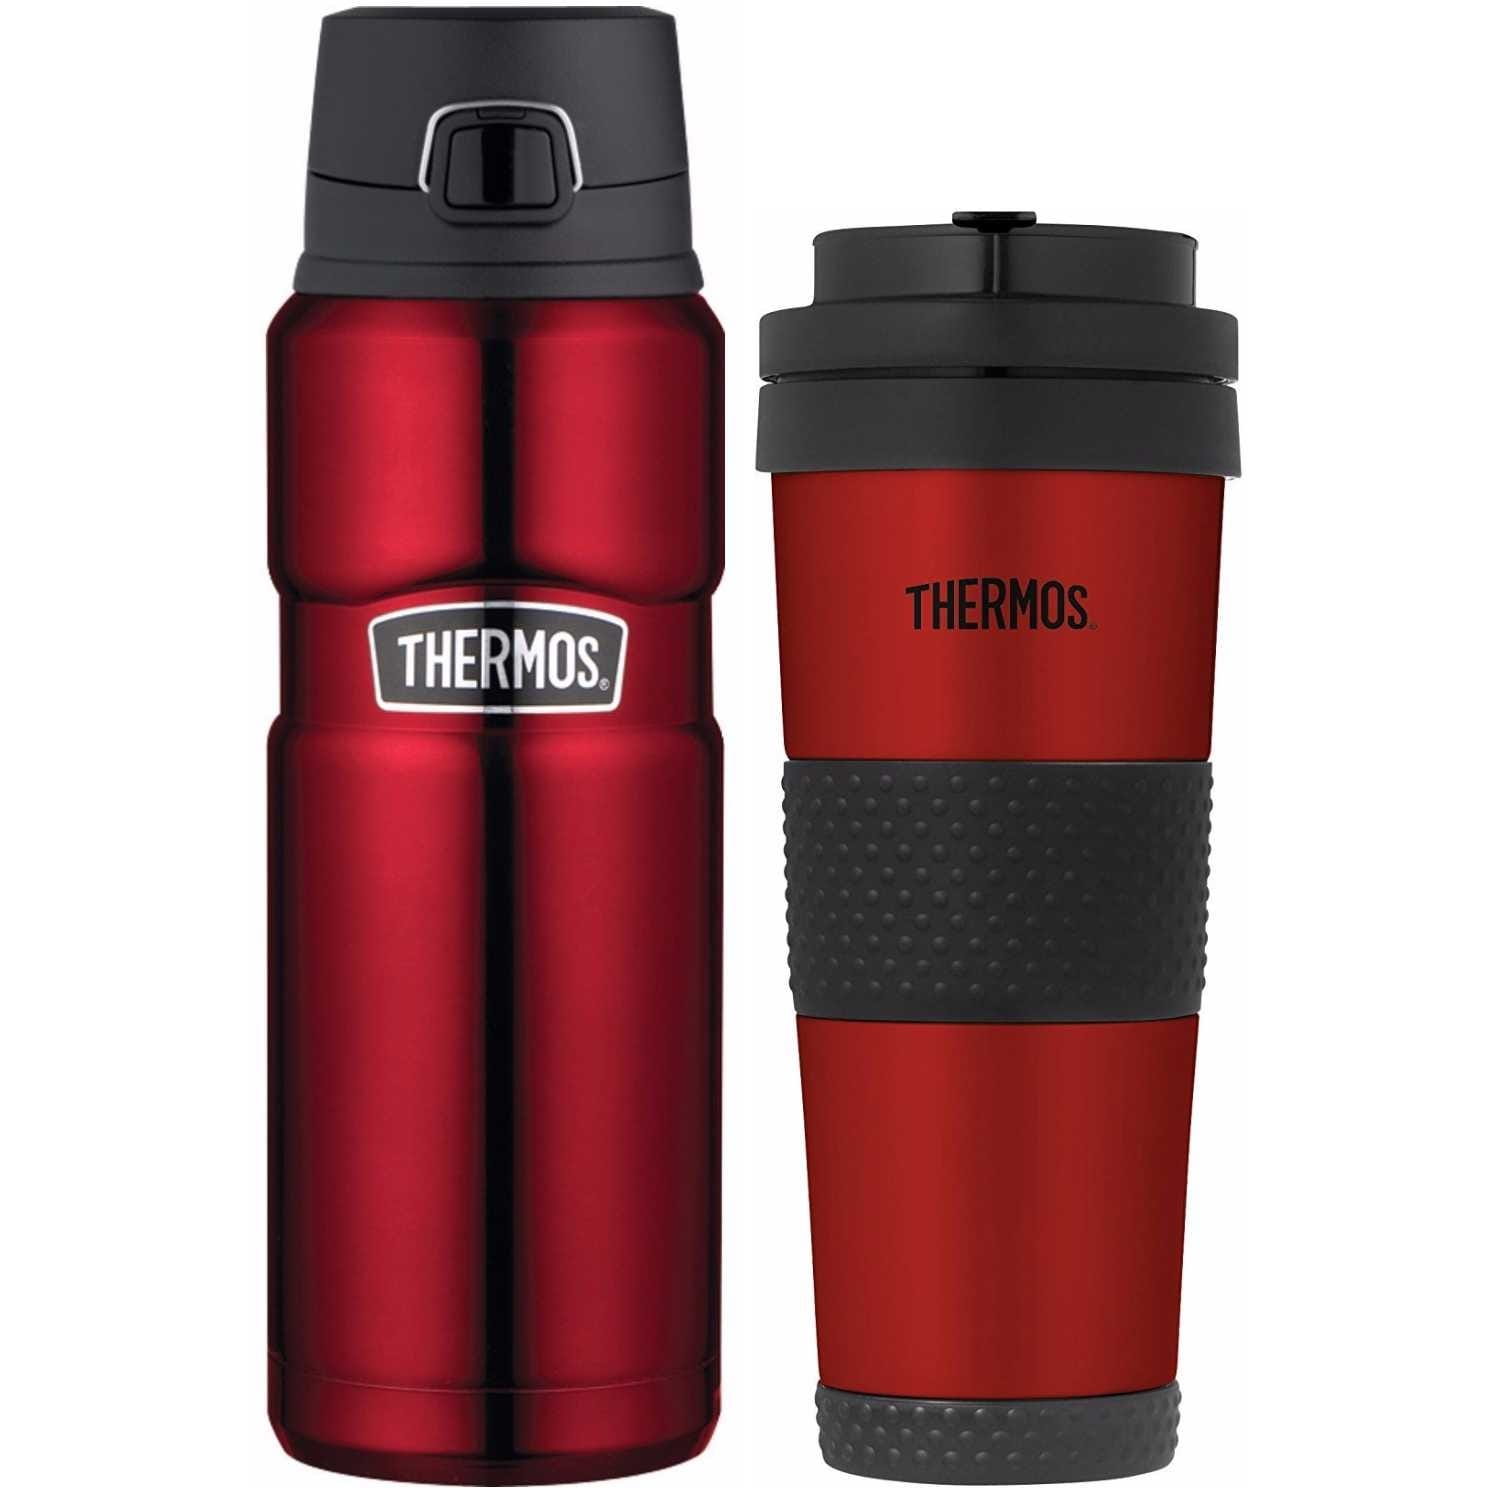 Thermos King Vacuum Insulated 24oz Drink Bottle and 18oz Tumbler (Cranberry  Red)